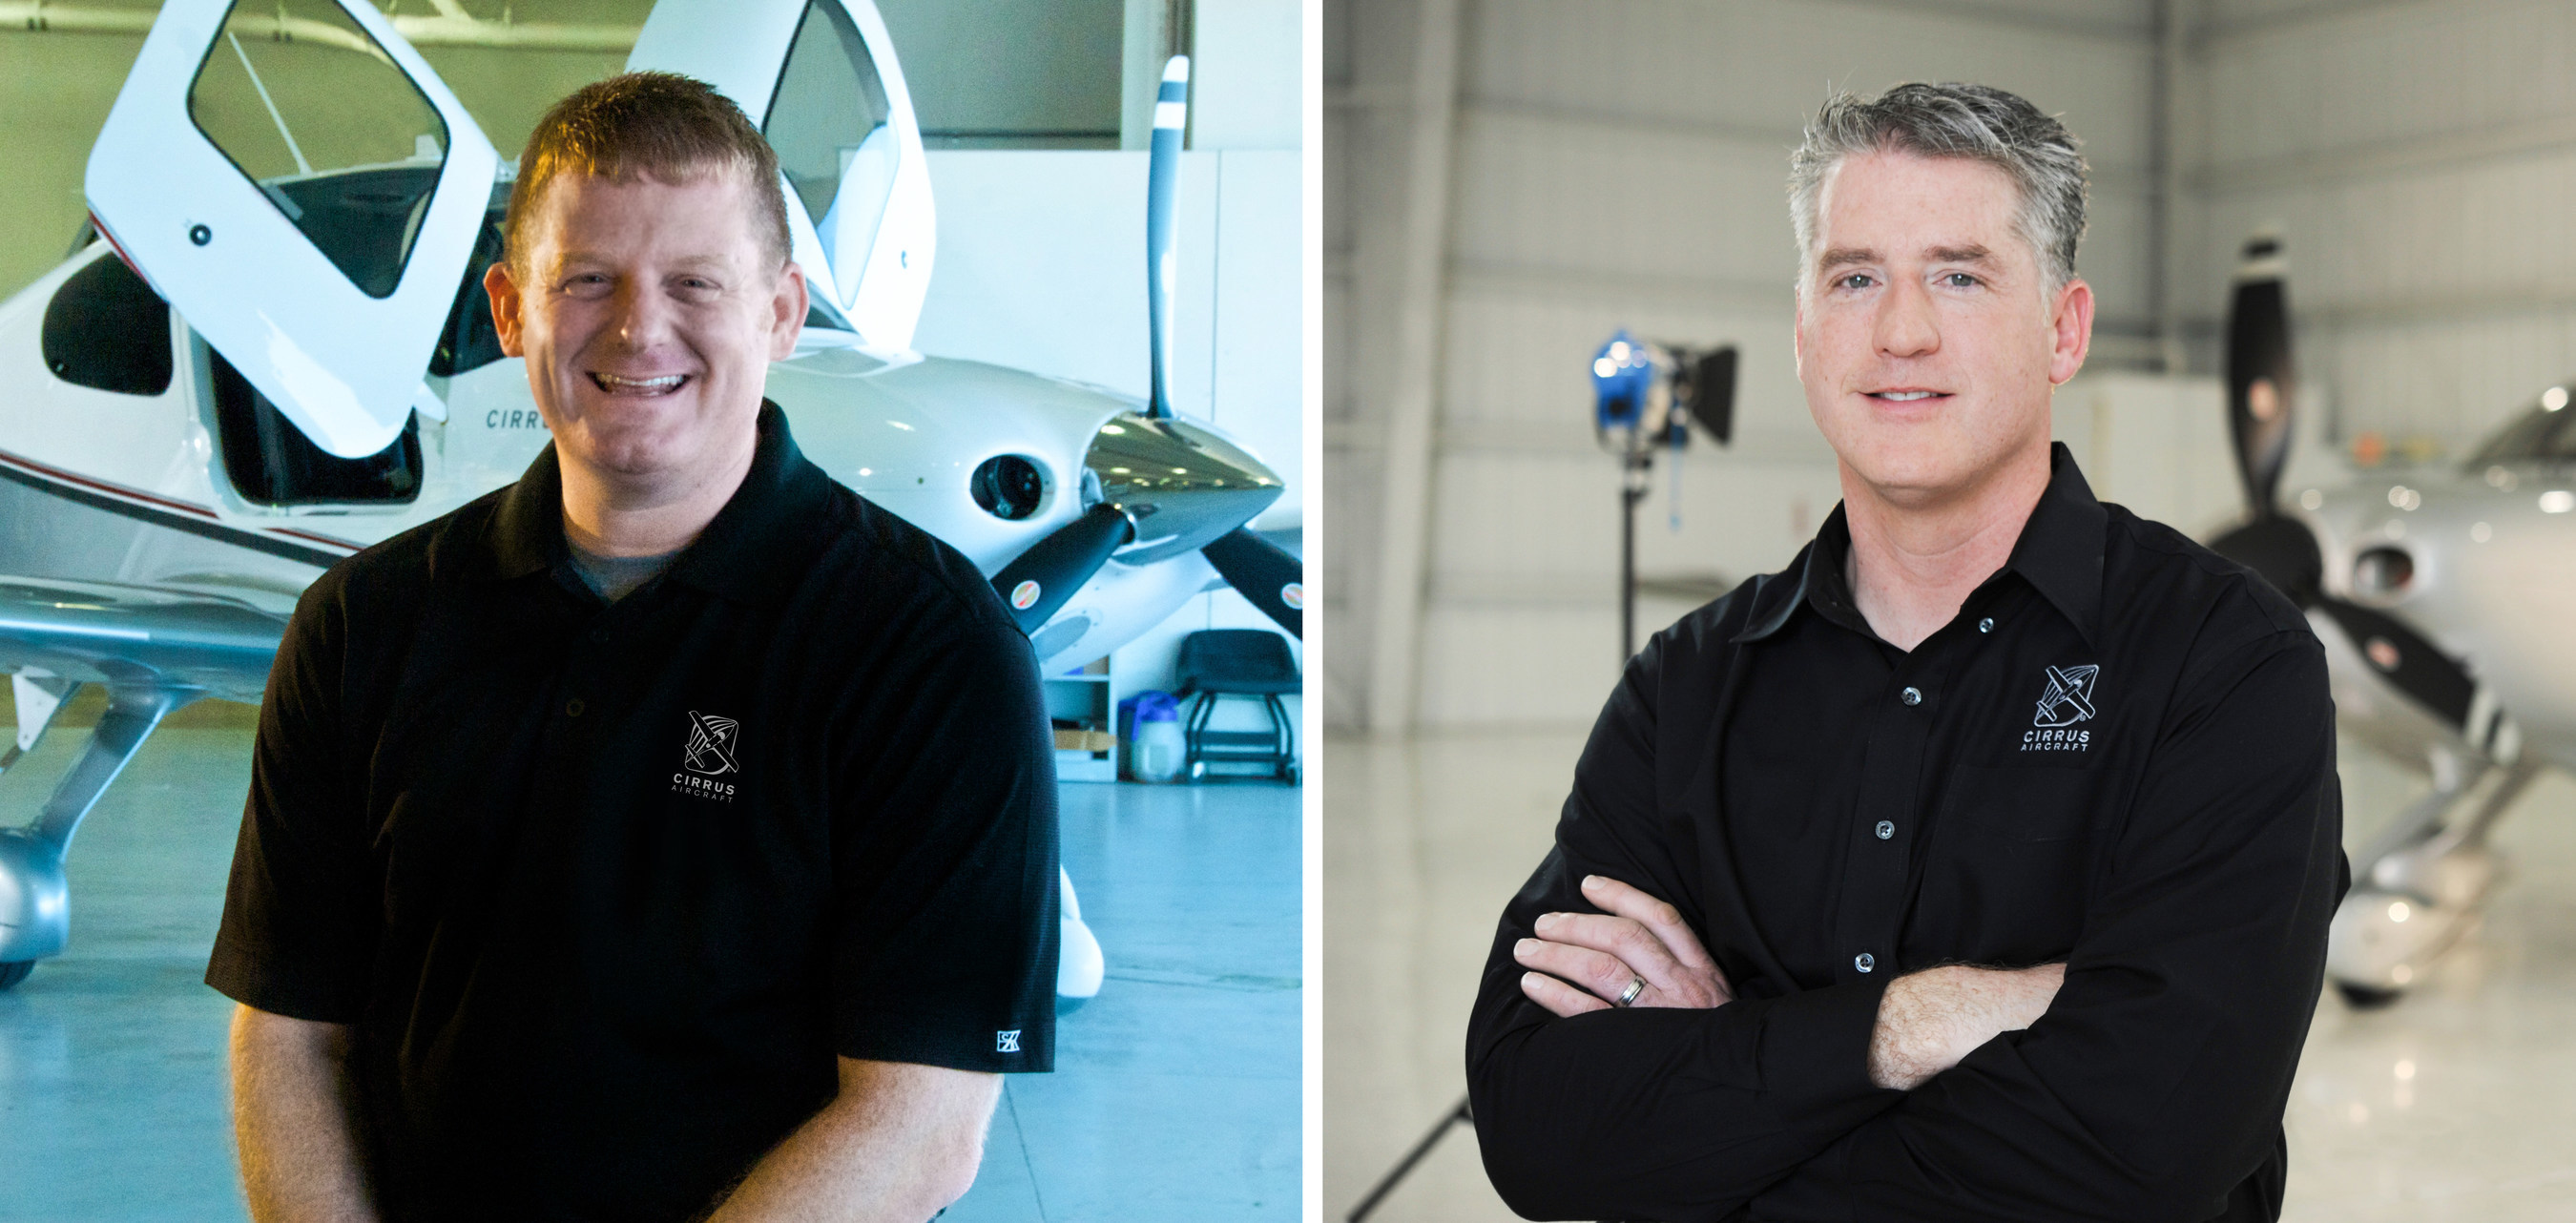 Cirrus Aircraft's Todd Simmons (left) has been promoted to President, Customer Experience and Pat Waddick has been named President, Innovation and Operations.